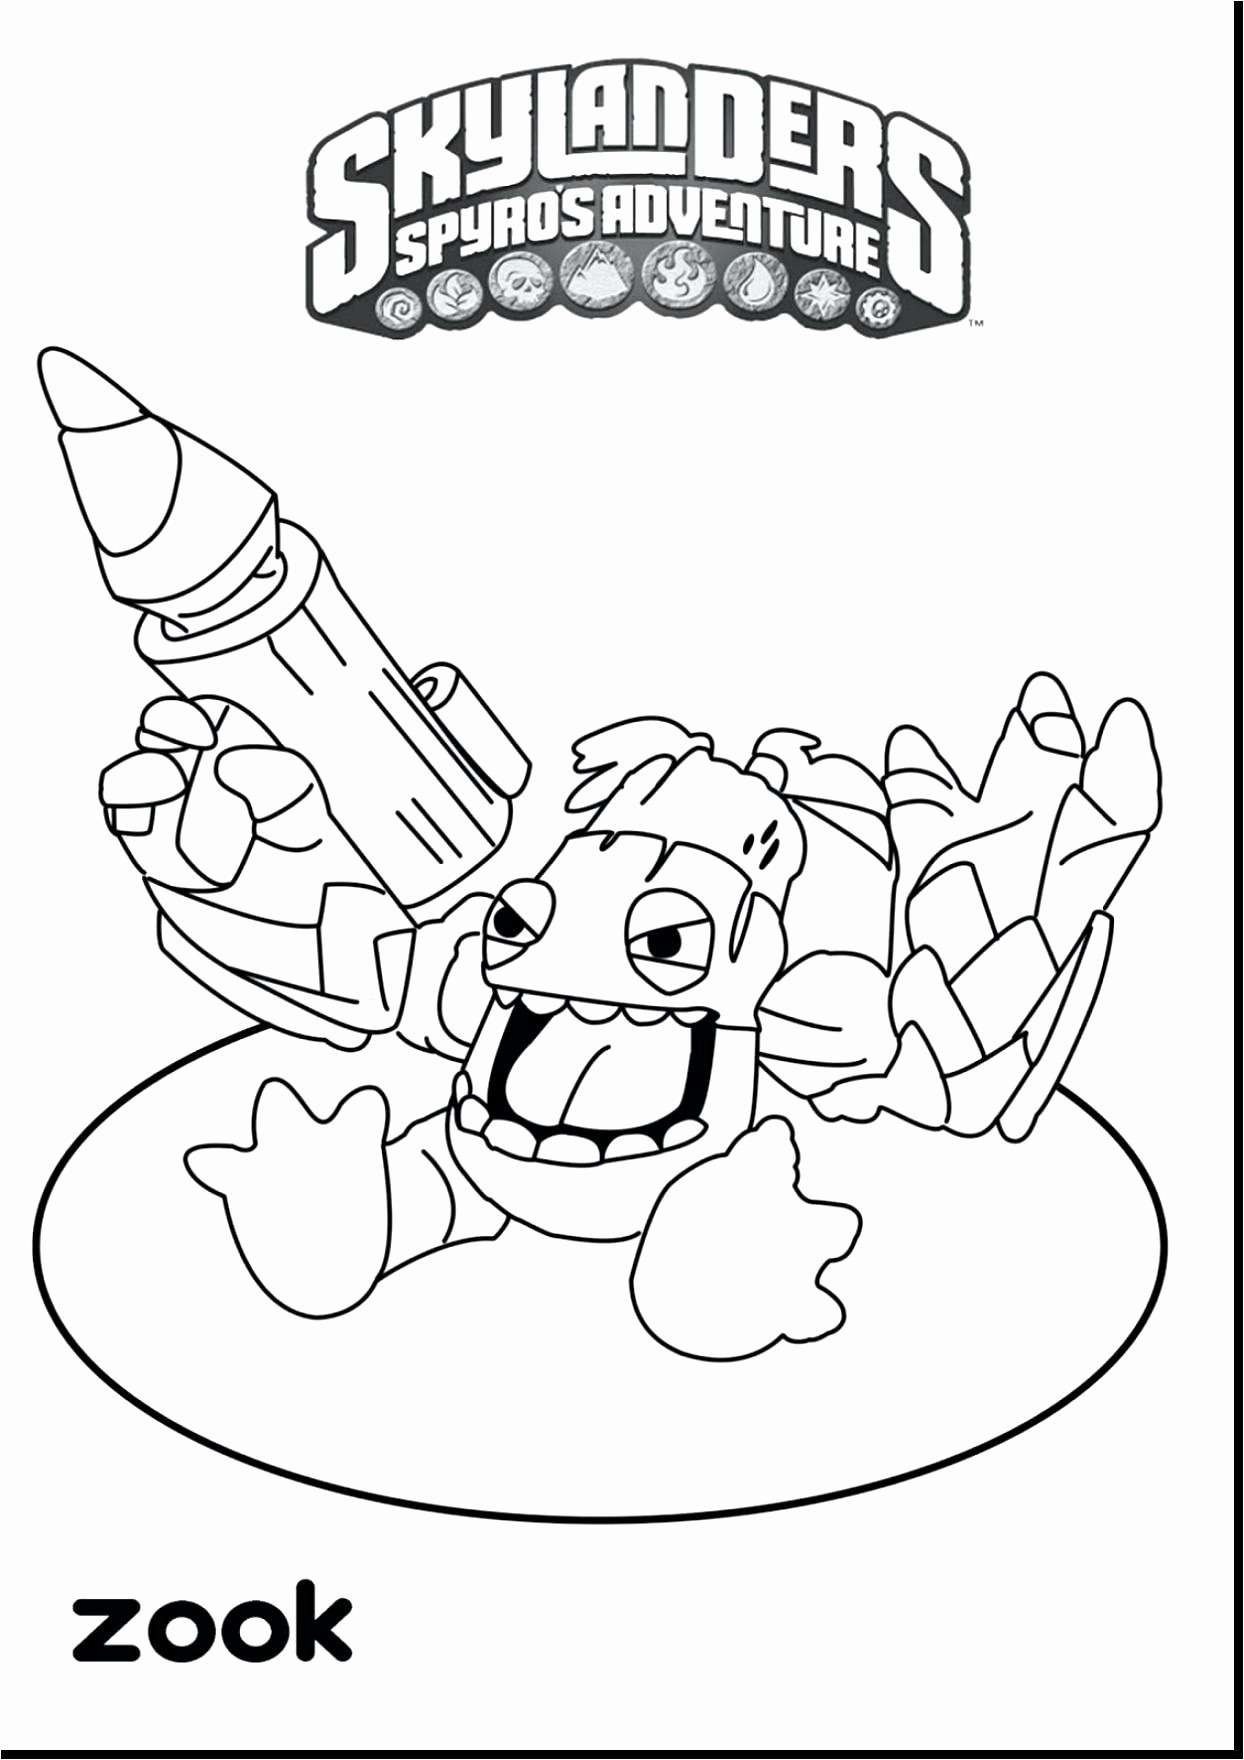 Christmas Coloring Card With Pages That You Can Color Printable